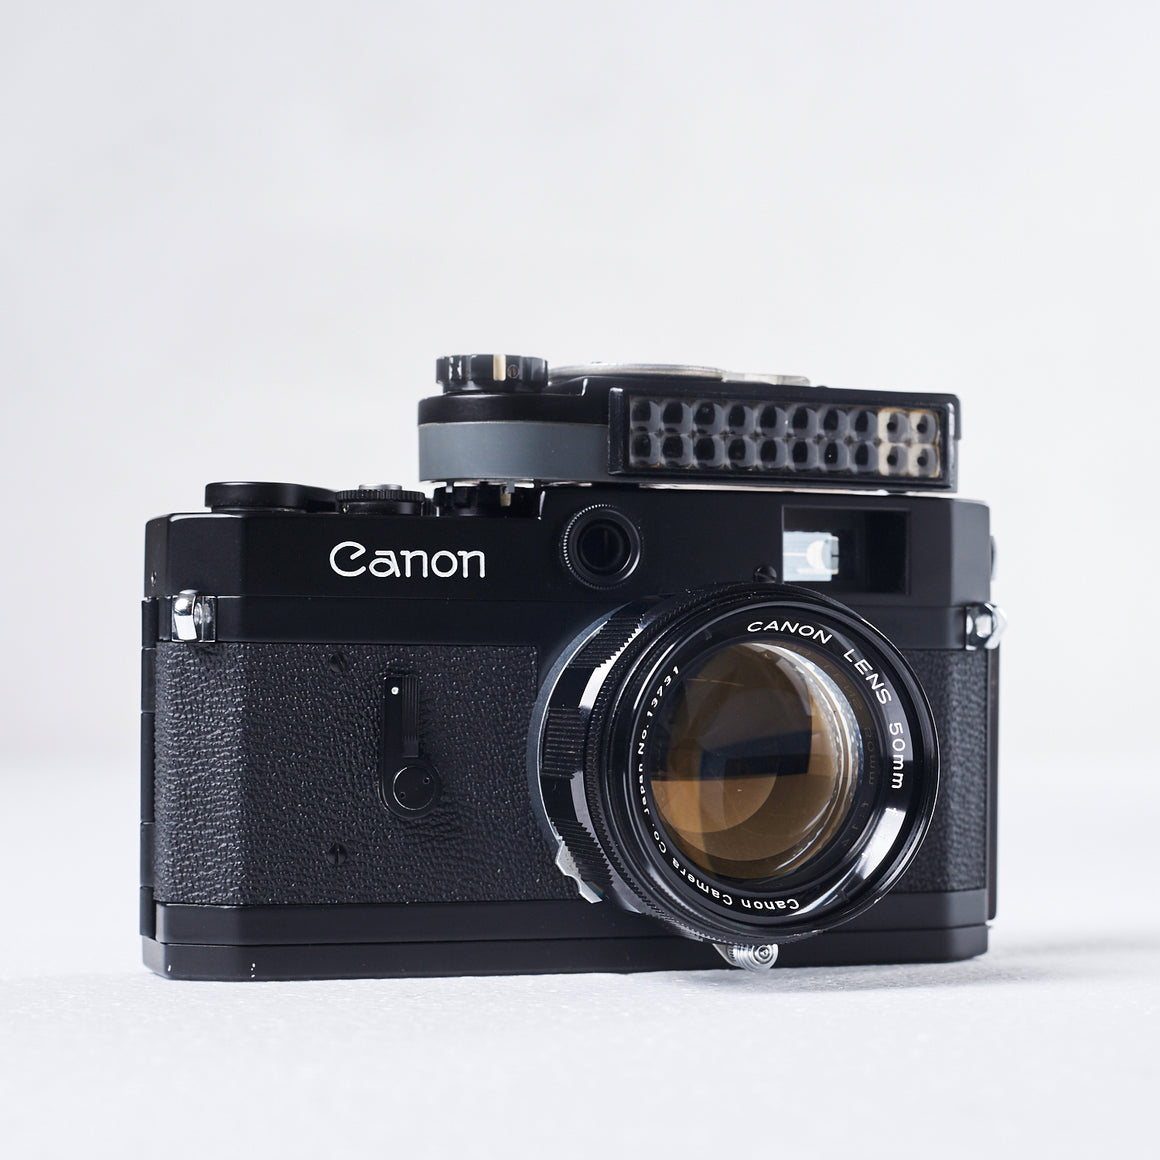 Canon P Rangefinder (Black Repaint) with 50mm f/1.4 LTM Lens, Canon P Lightmeter